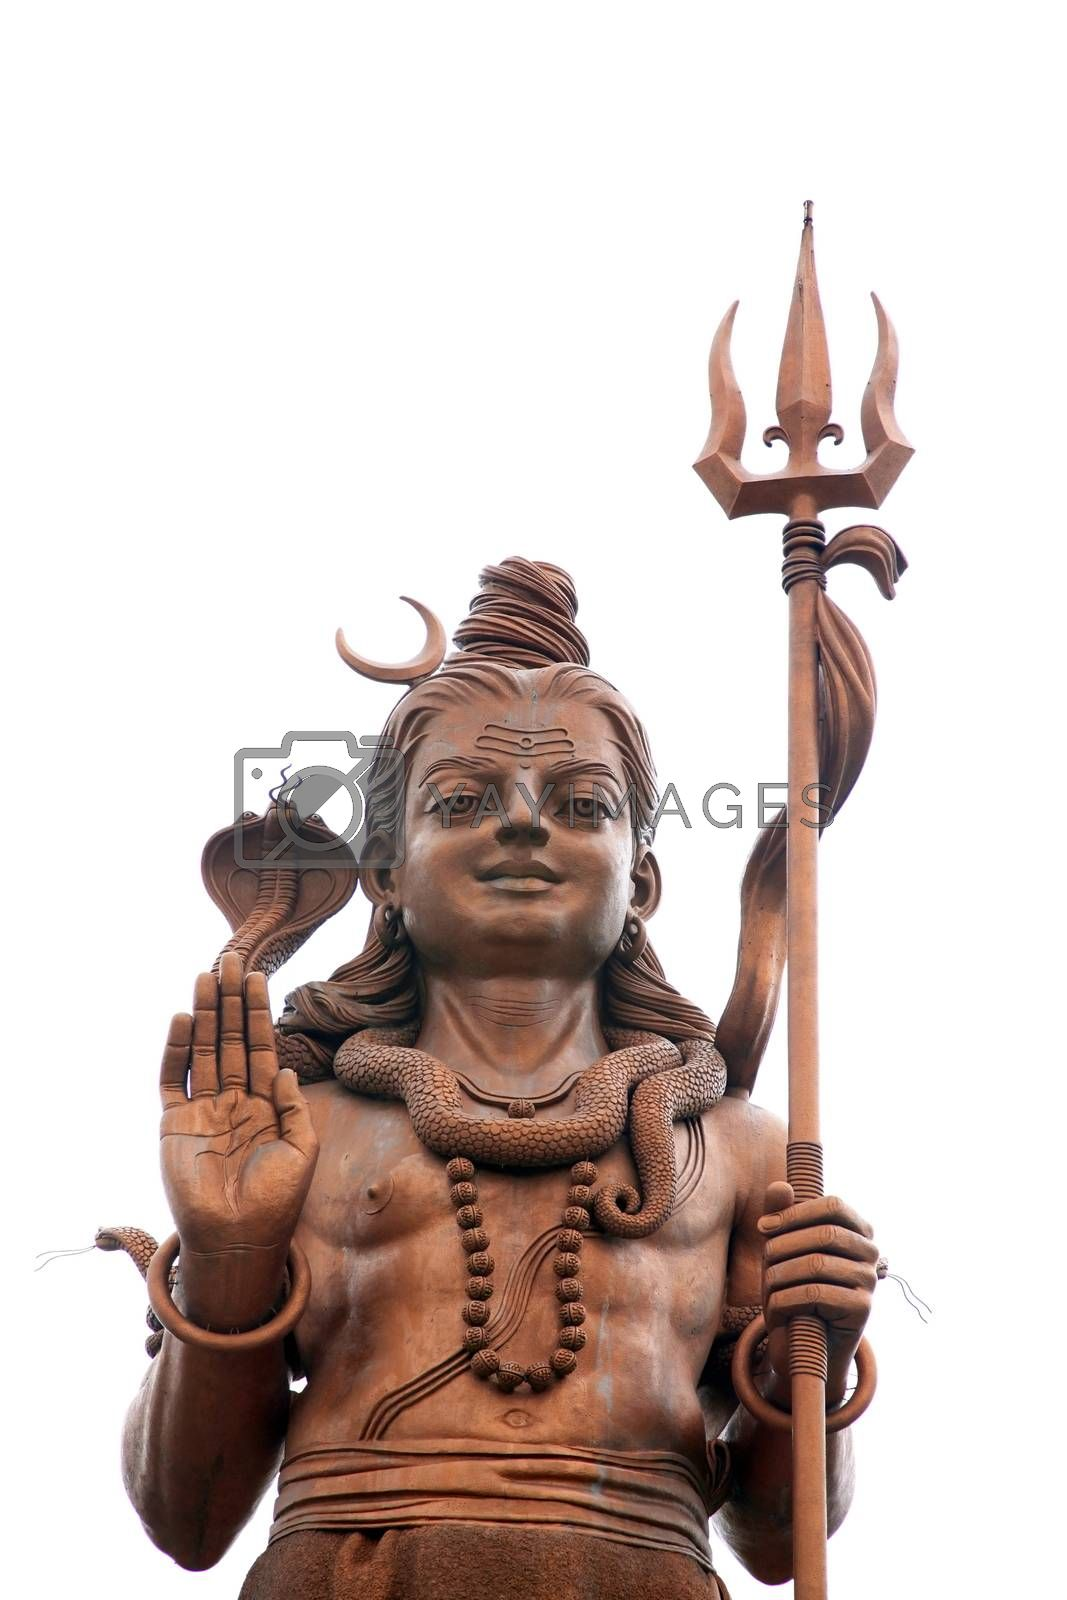 Statue of Lord Shiva on white background. Mauritius